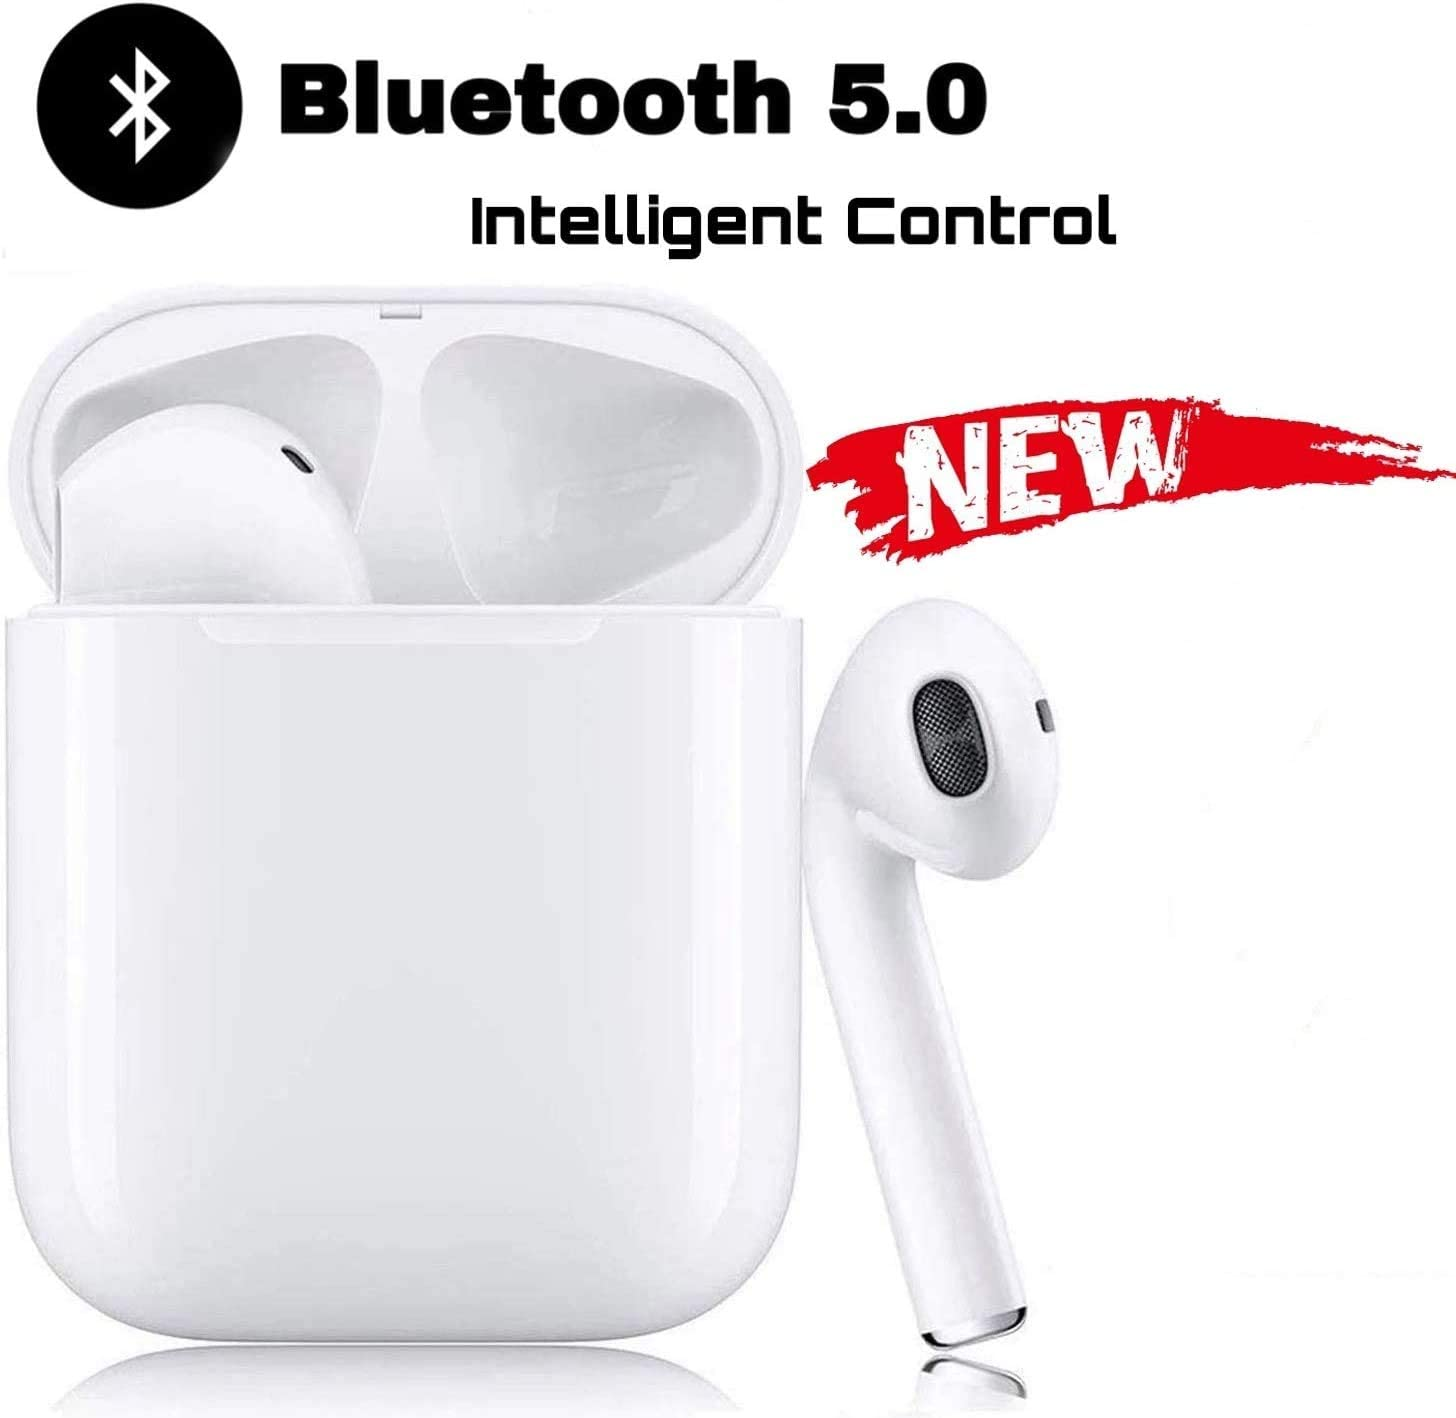 Auriculares Inal/ámbricos Bluetooth In-Ear Mini Auriculares Auriculares,Emparejamiento Autom/ático Emergente,Deportivos para Android//iPhone Airpods//Xiaomi//Huawei//Samsung Auriculares Bluetooth